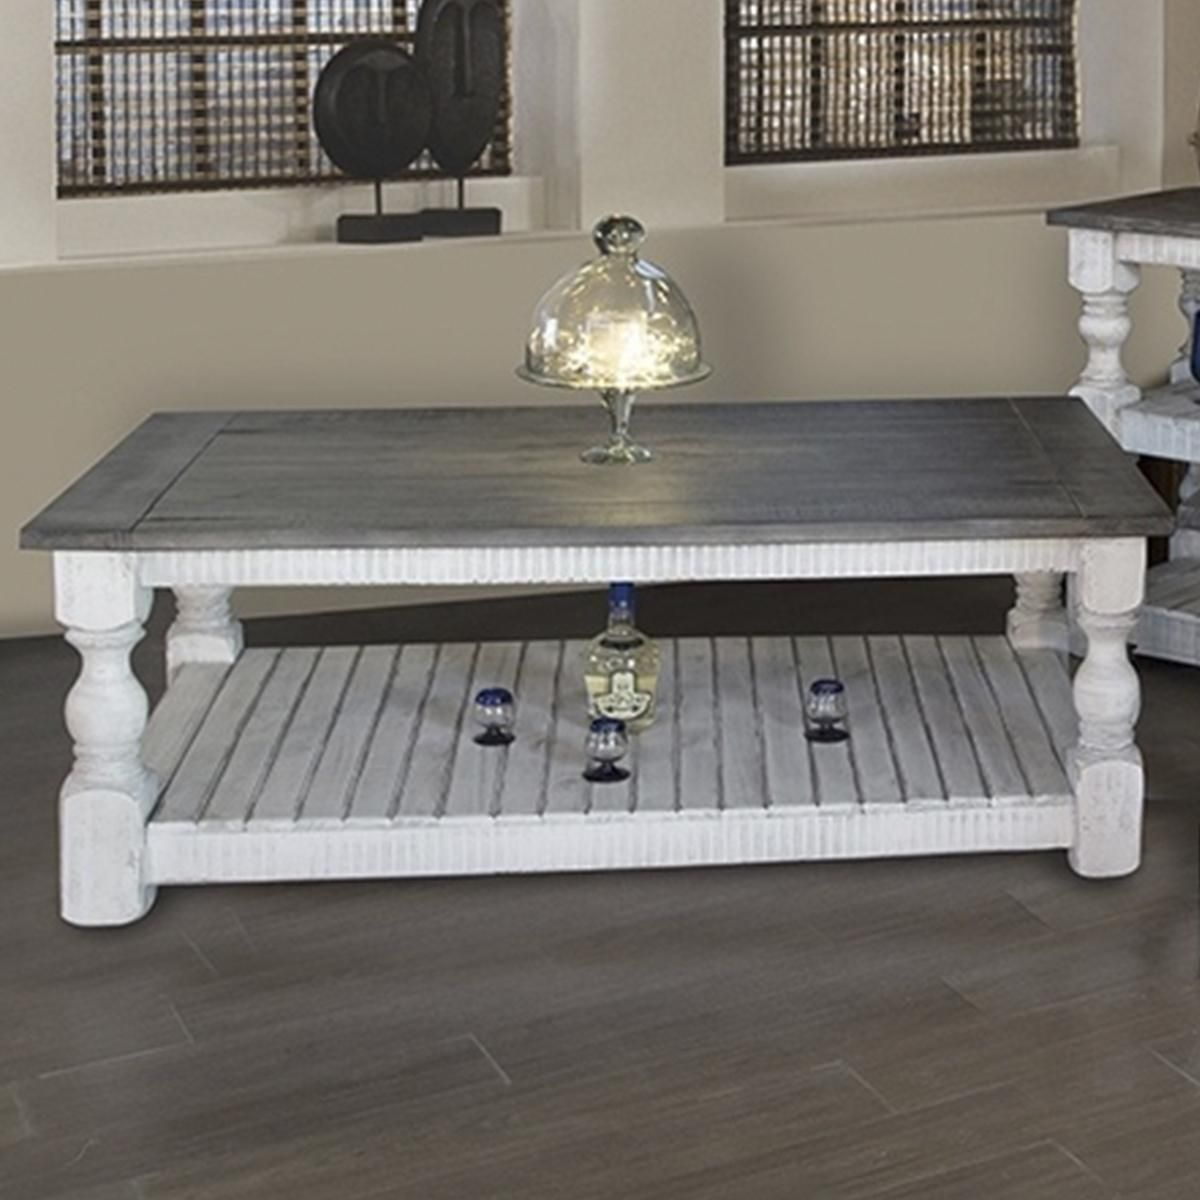 Fallridge Stone Cocktail Table In Off White And Gray Nfm Table Cocktail Tables Furniture [ 1200 x 1200 Pixel ]